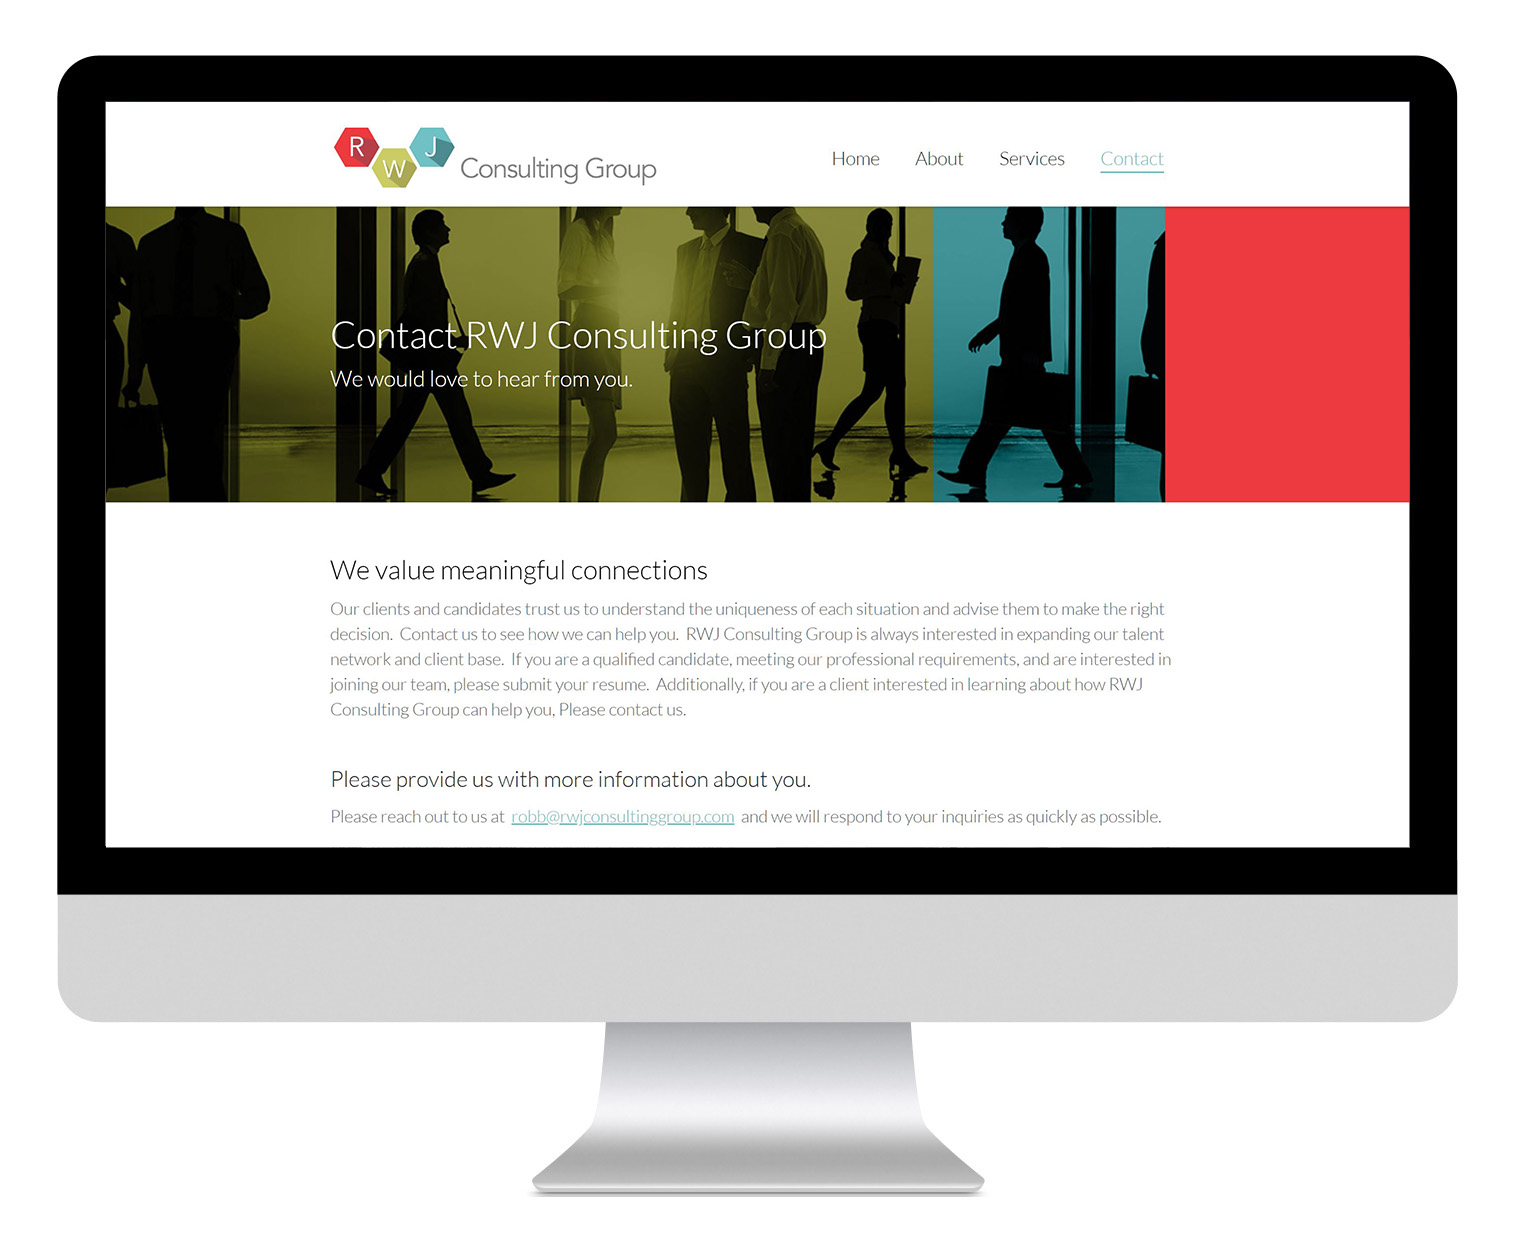 RWJ Consulting Group Contact Design